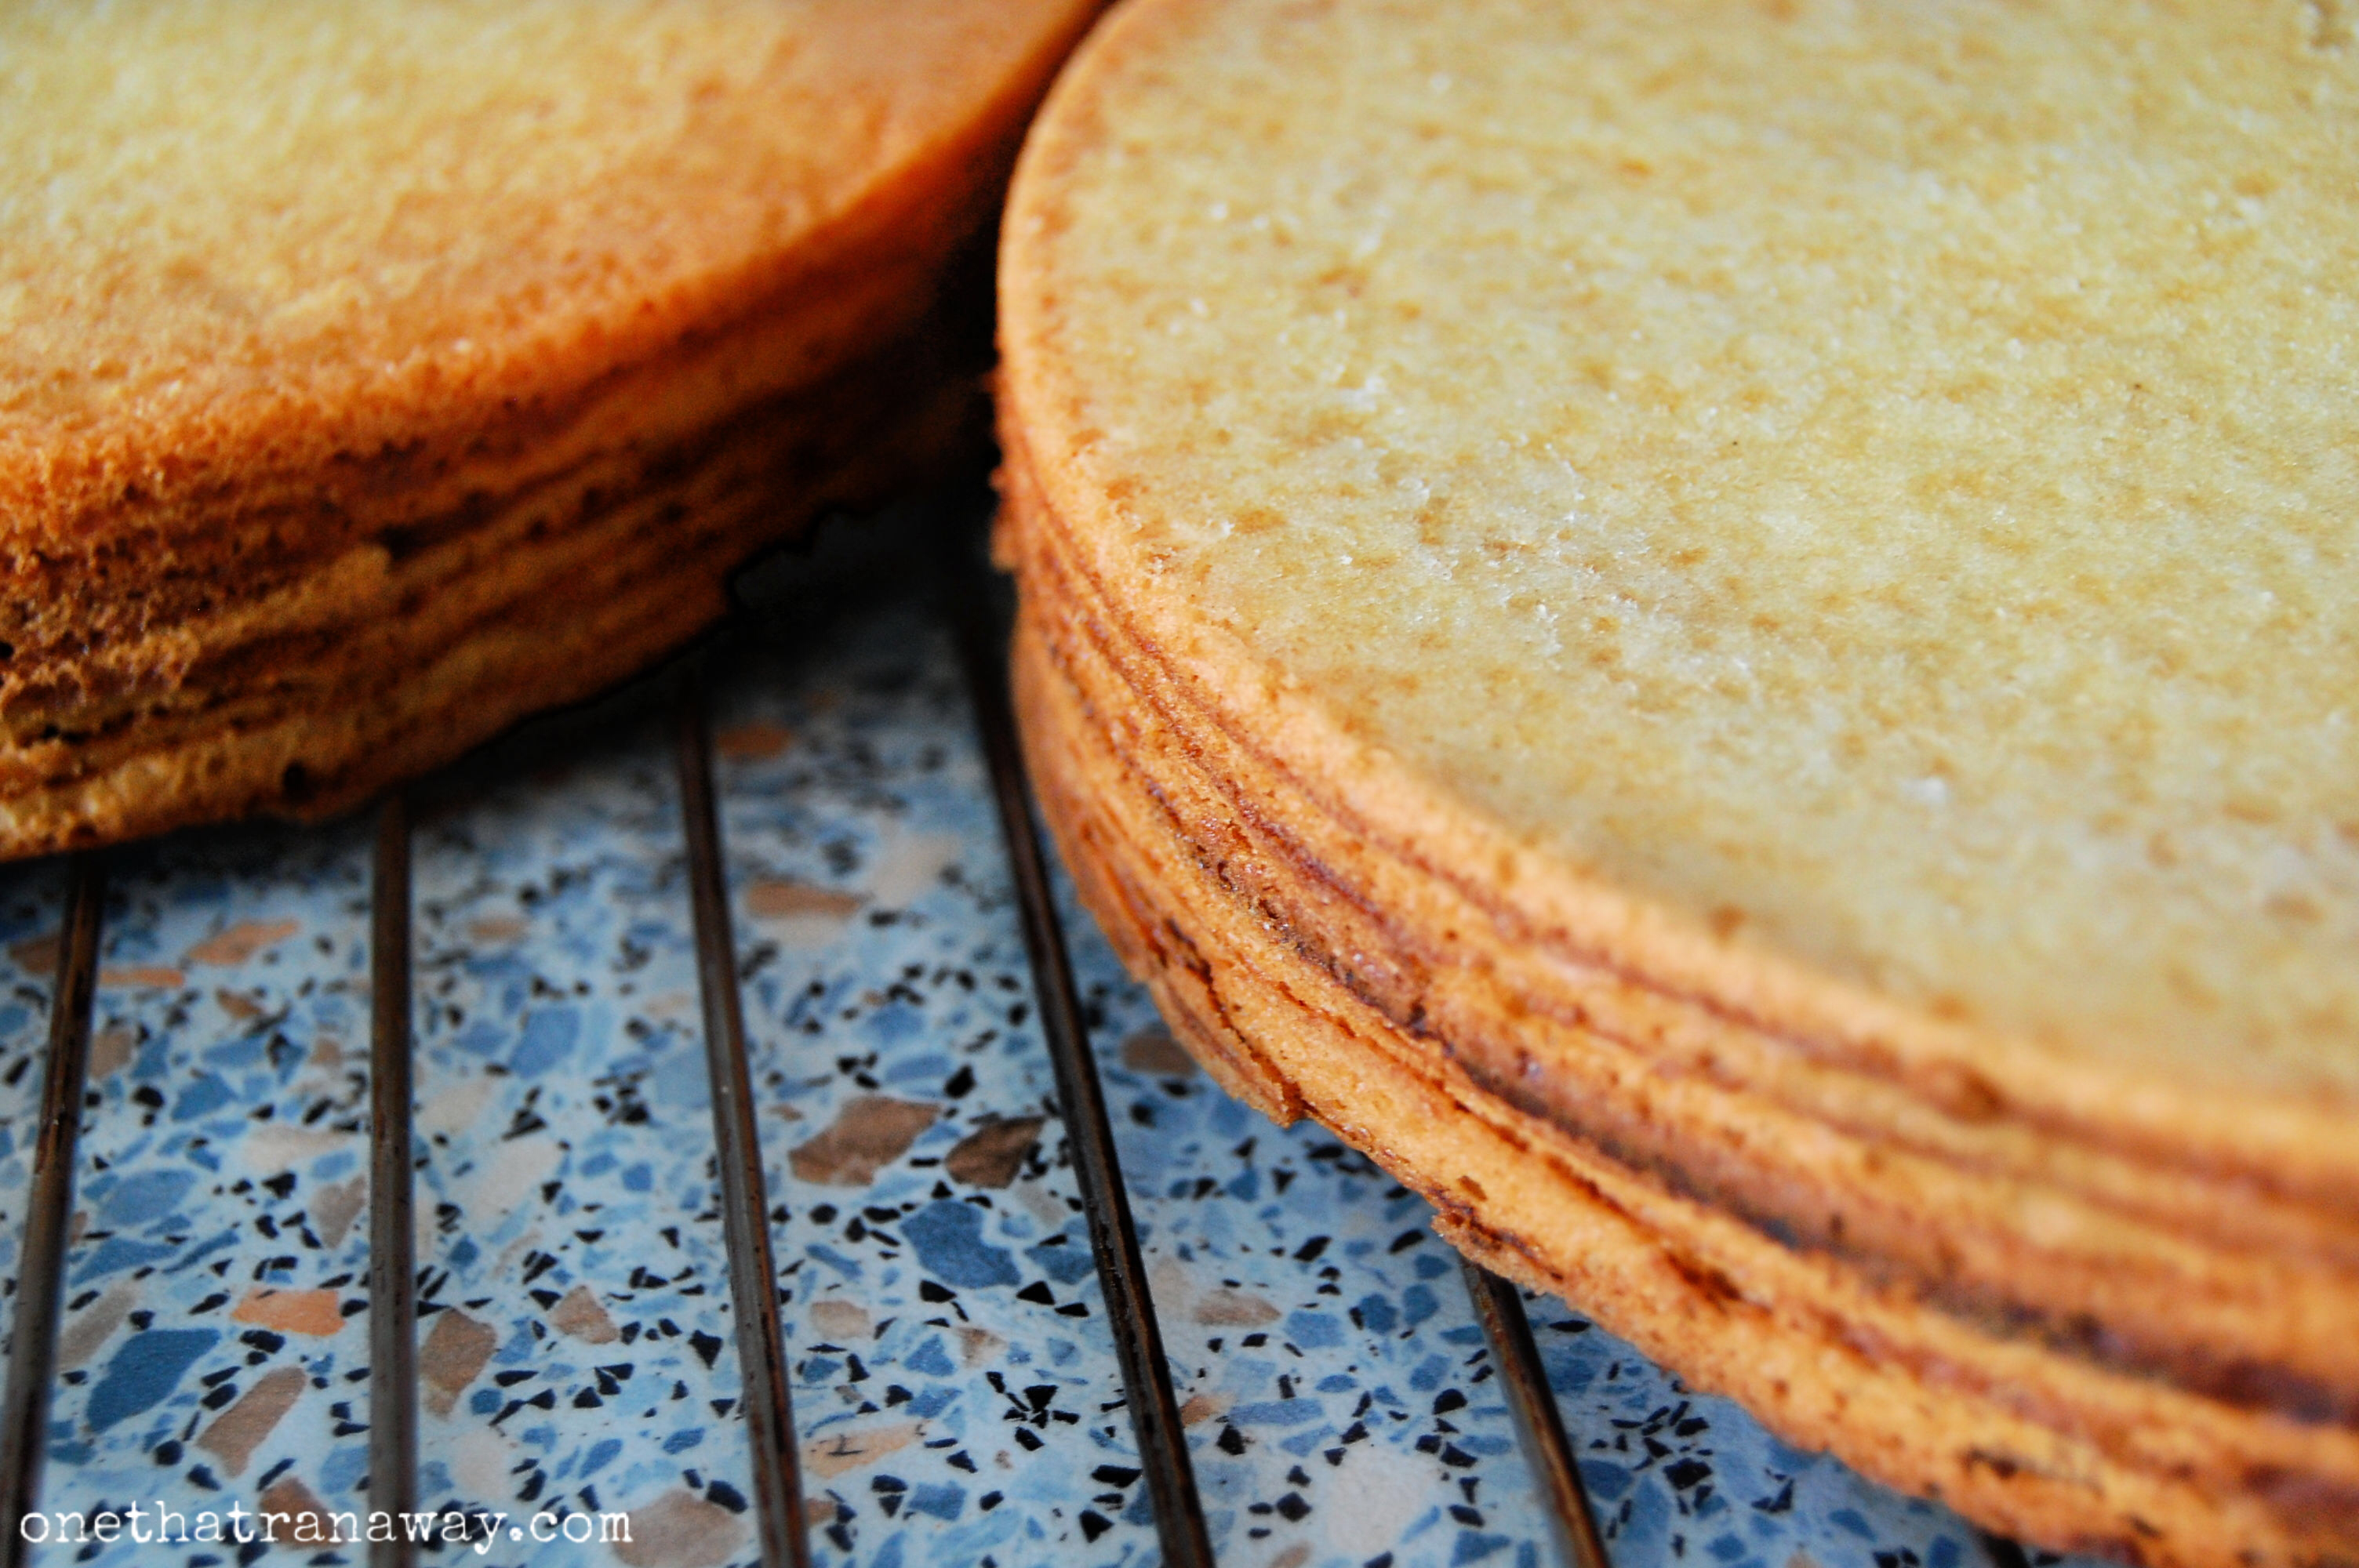 two Baumkuchen cakes without glaze